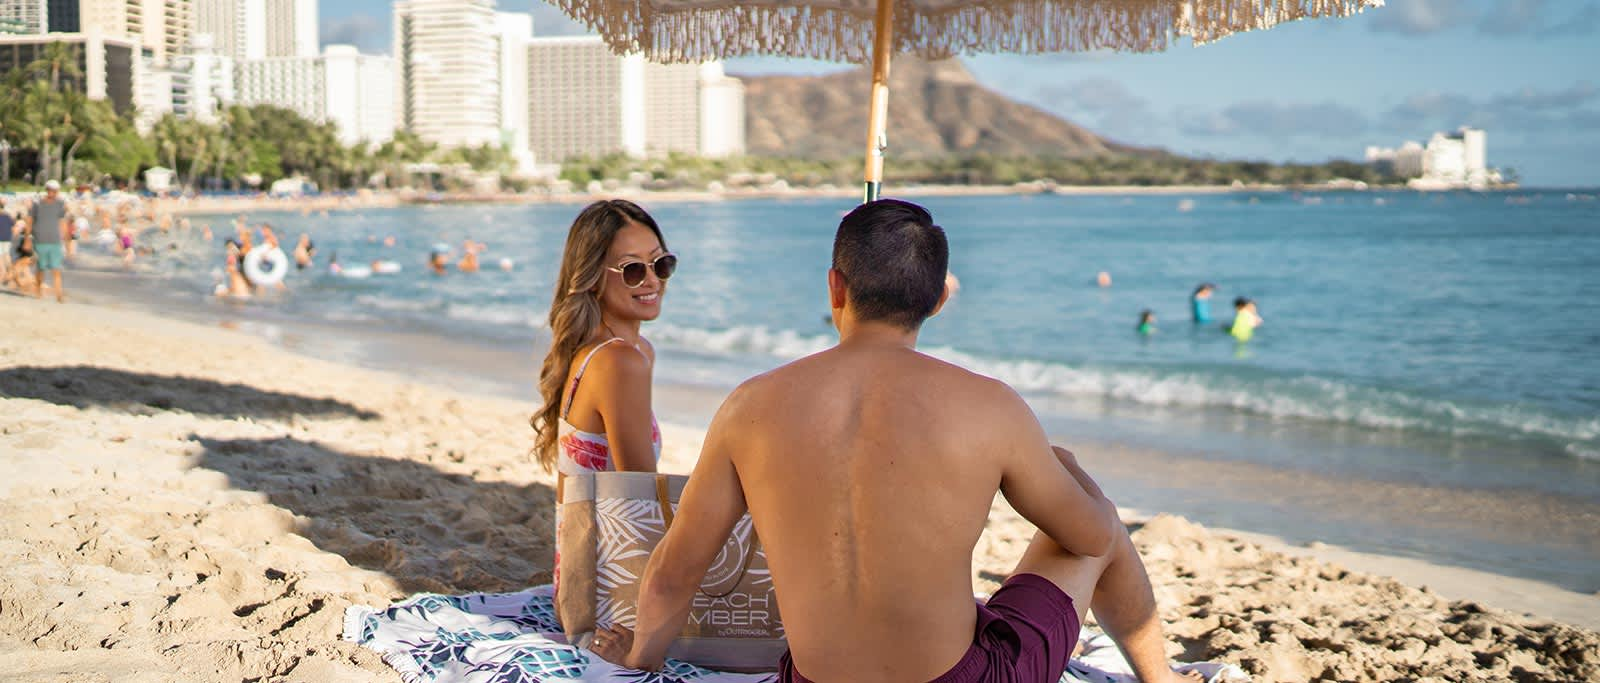 Honolulu, Hawaii Hotel Specials